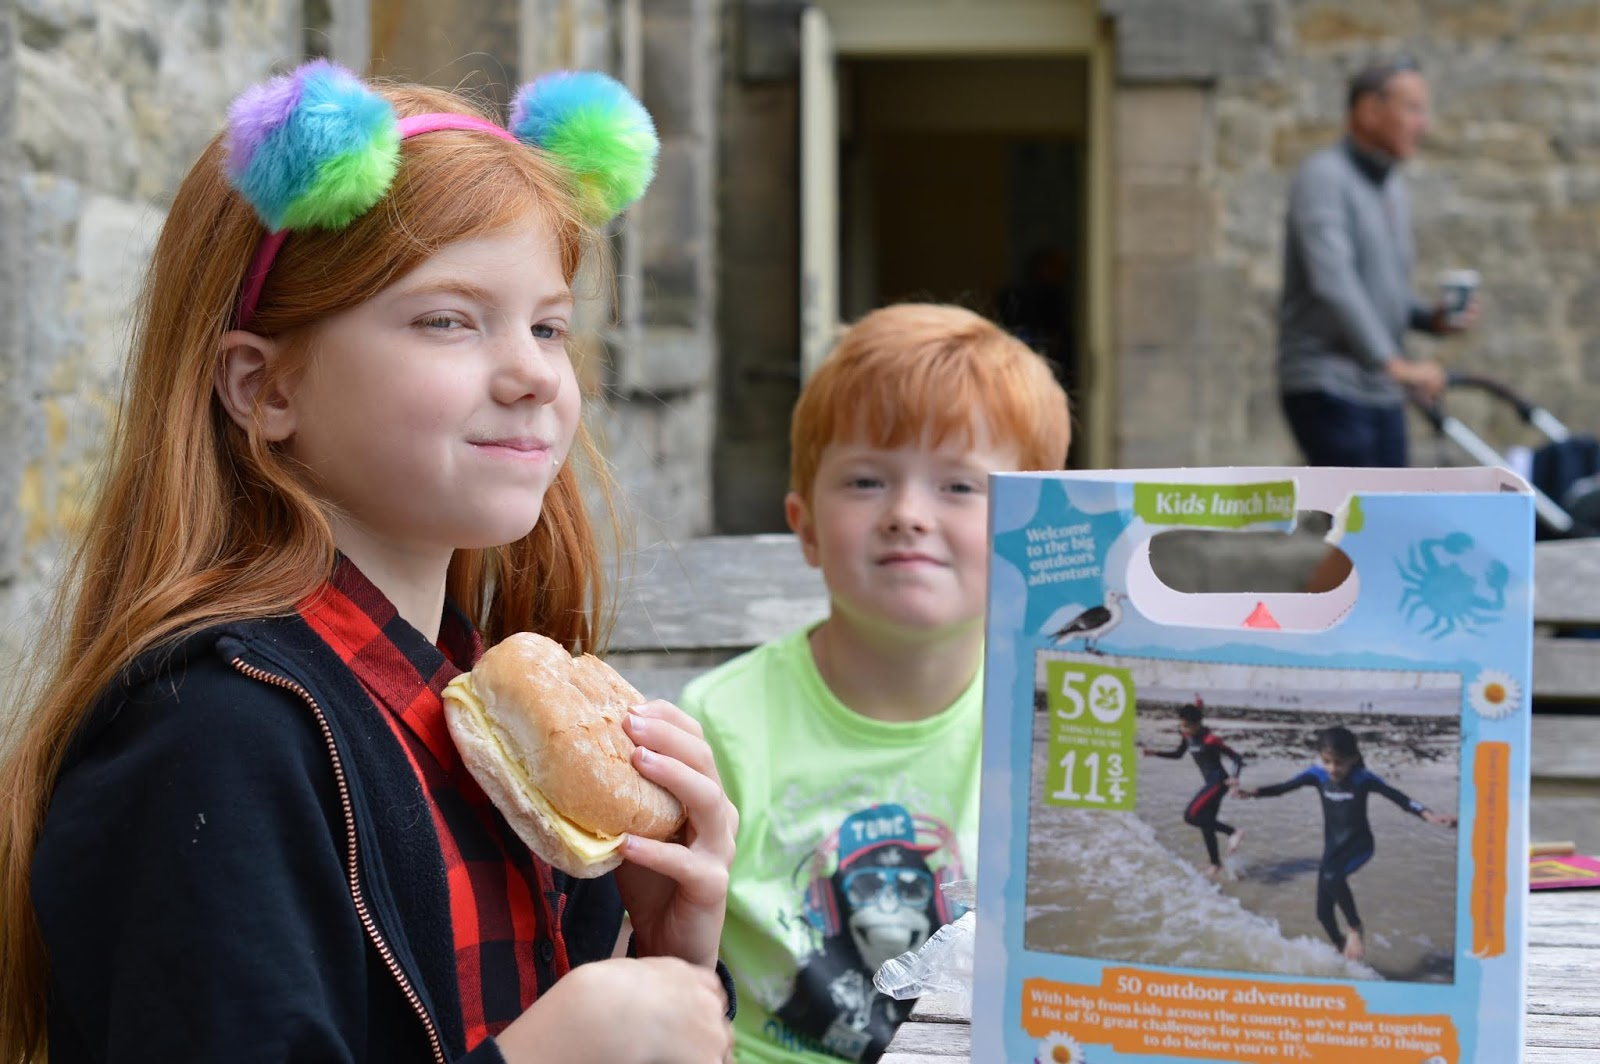 10 Reasons to Visit Seaton Delaval Hall  - kids lunch boxes